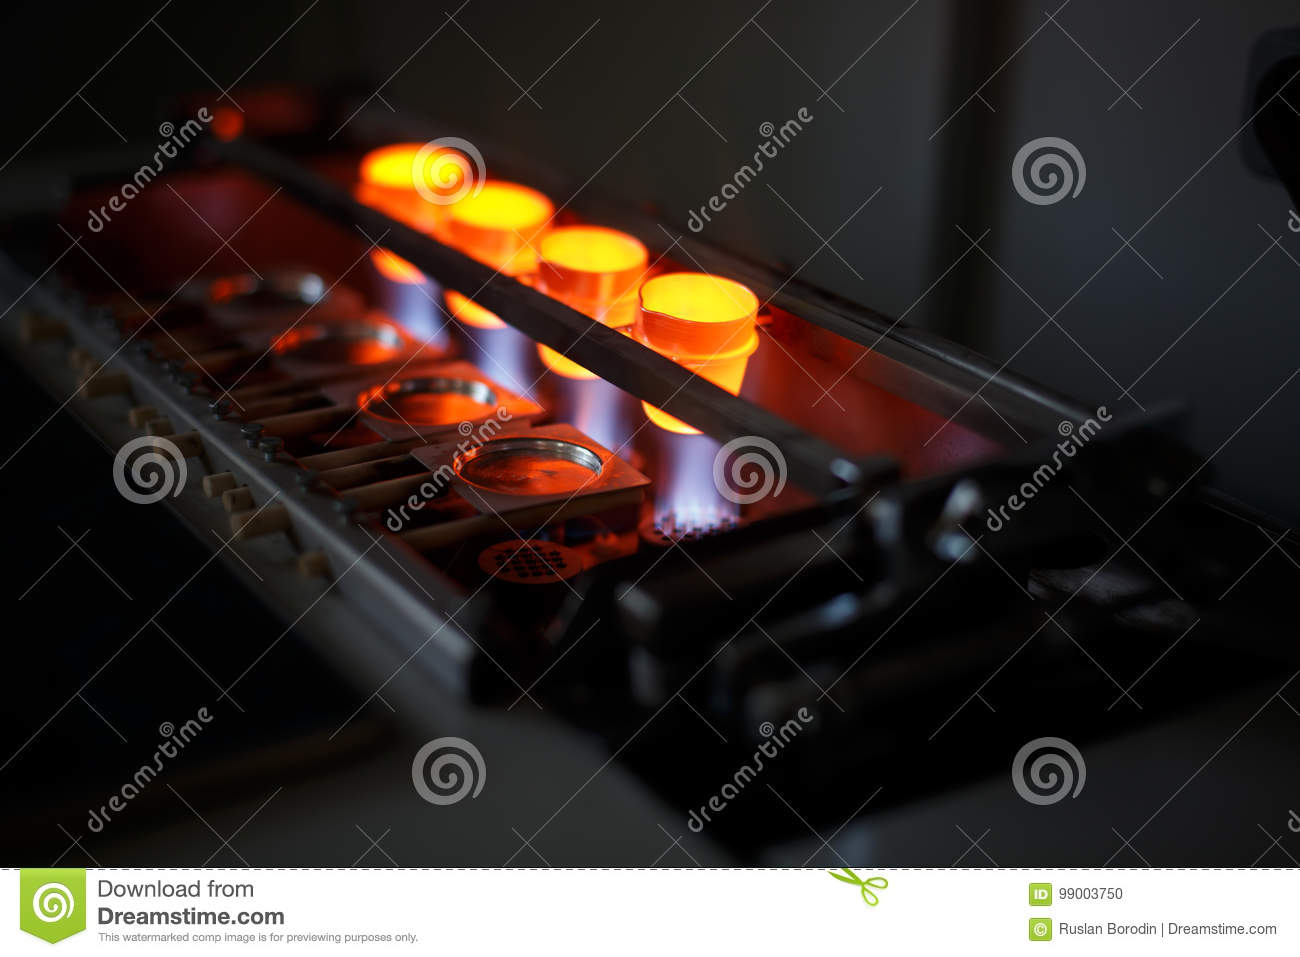 Liquid steel melting on a furnace on a dark background. Technology for roasting metal. Industrial metallurgy equipment.